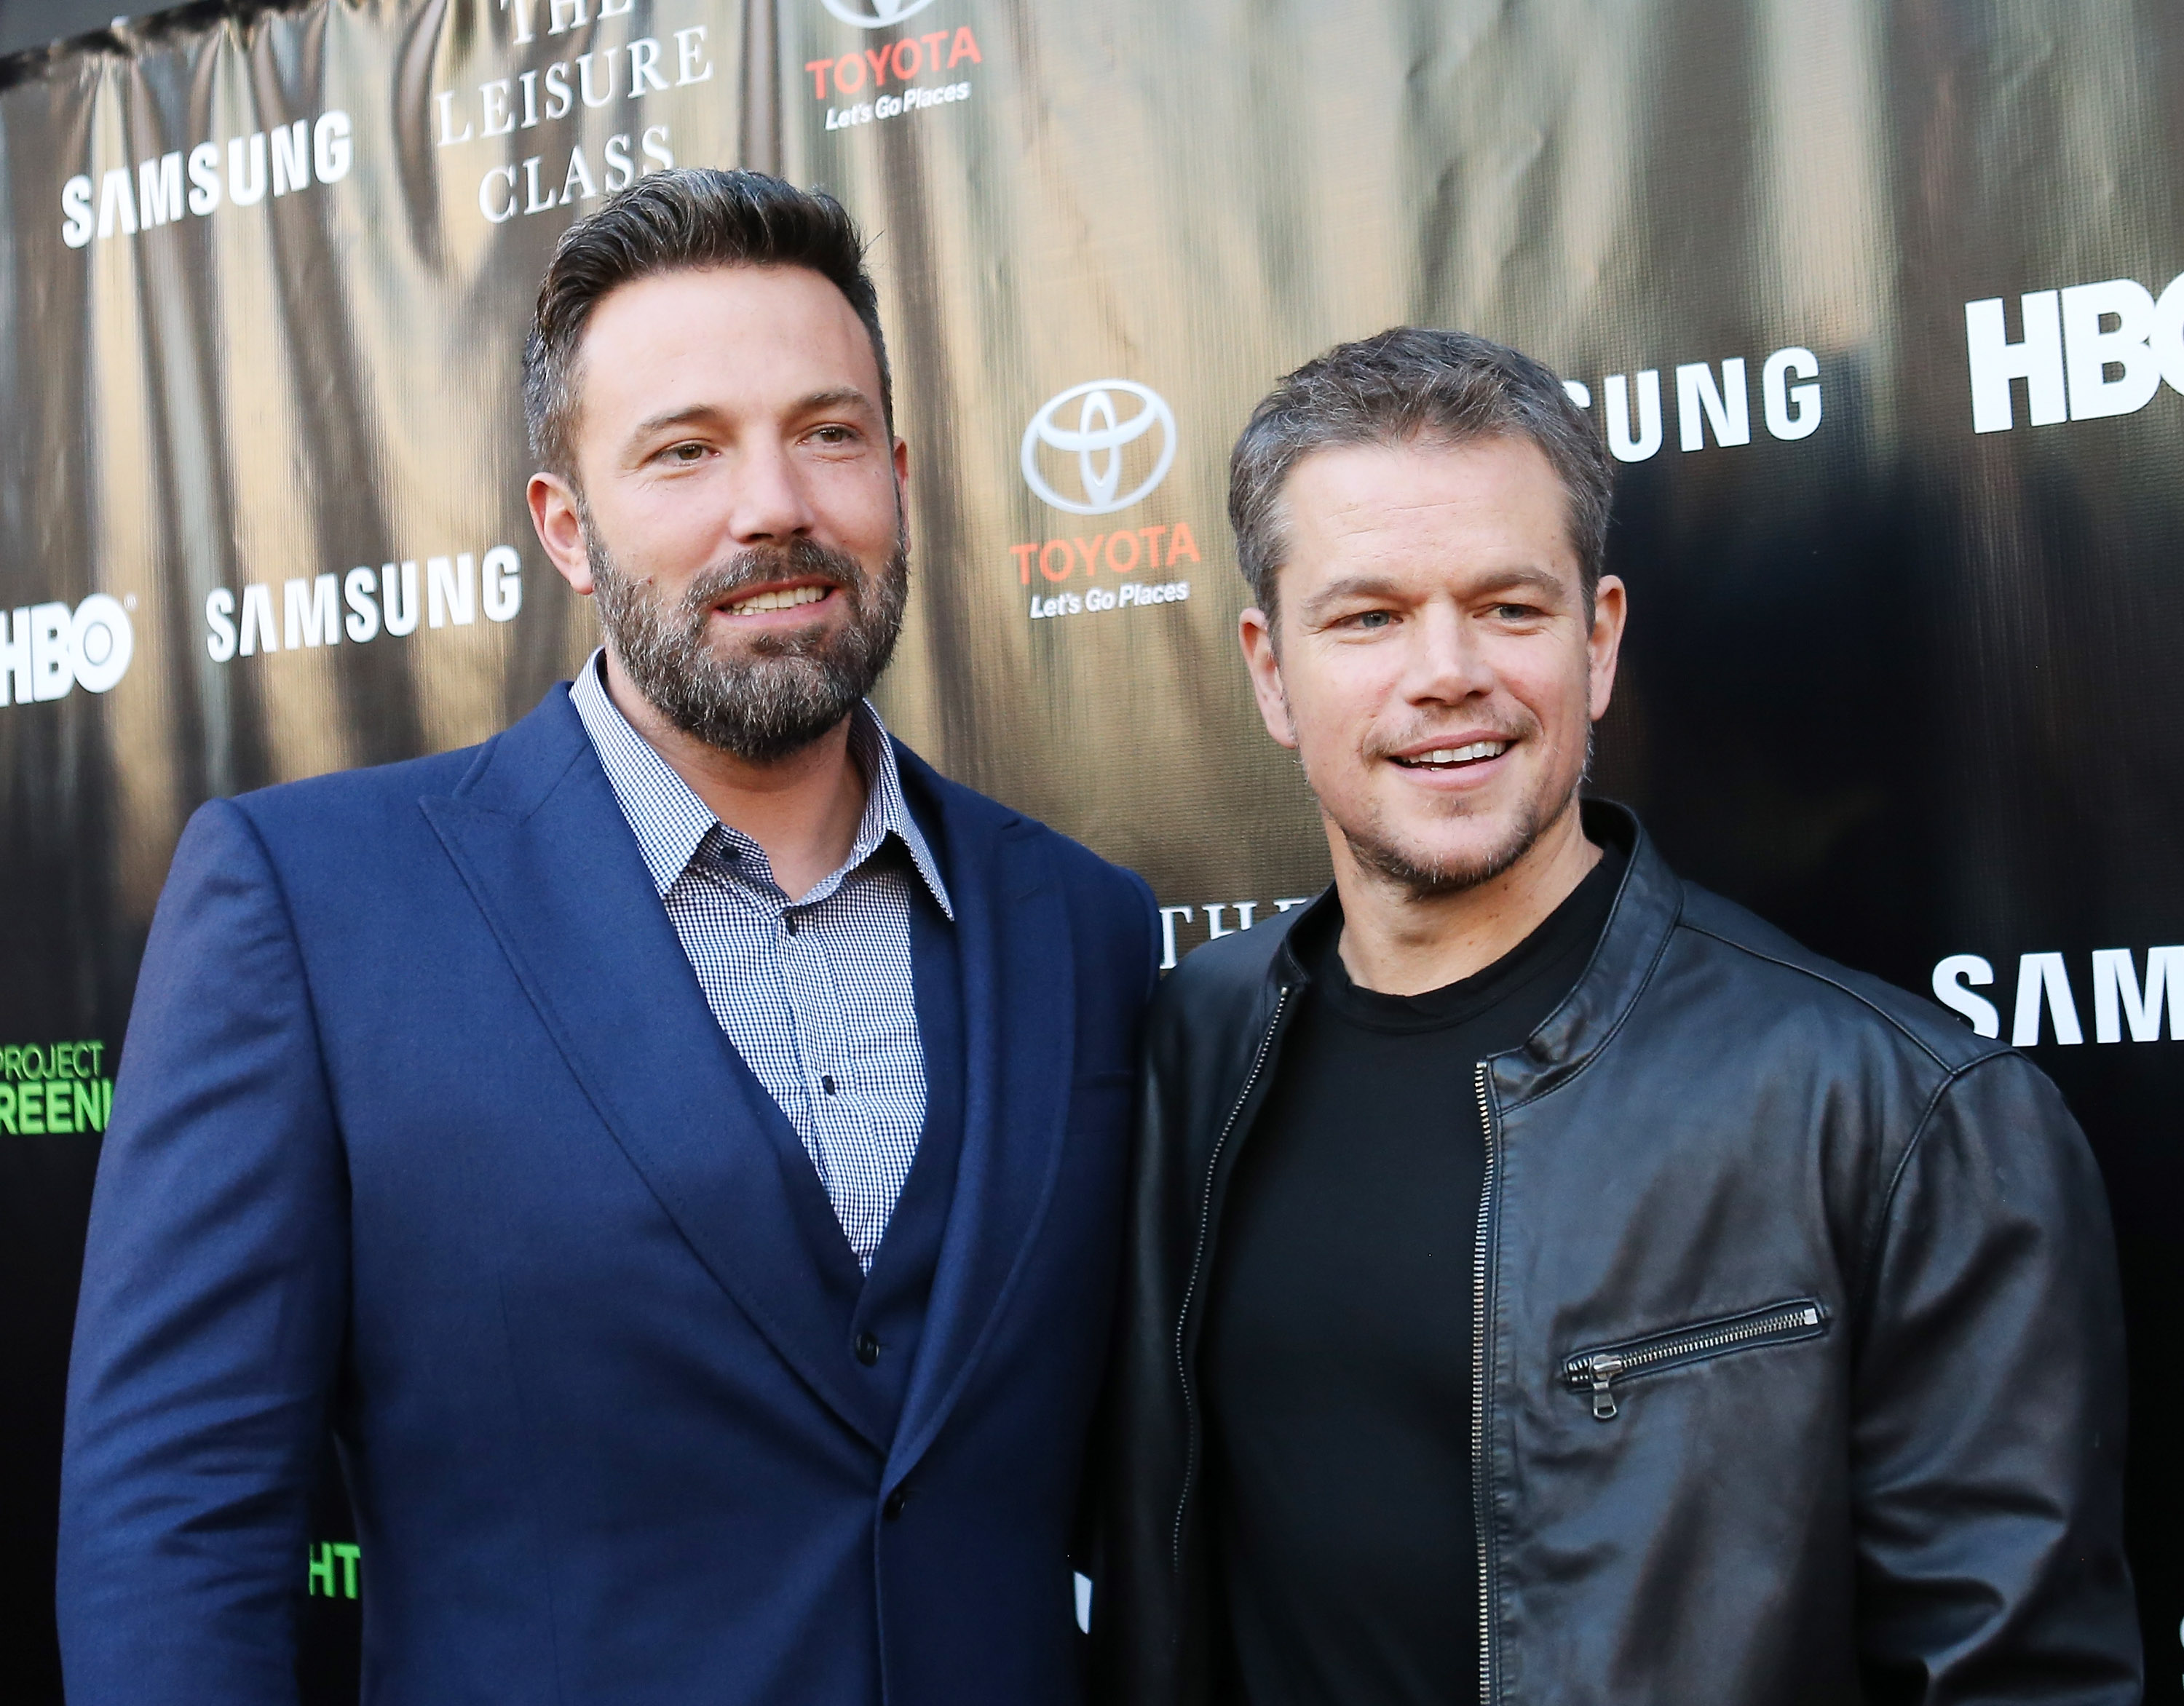 Ben Affleck (L) and Matt Damon arrive at HBO presents The Project Greenlight season 4 winning film  The Leisure Class  held at The Theatre - The Ace Hotel on August 10, 2015 in Los Angeles, California.